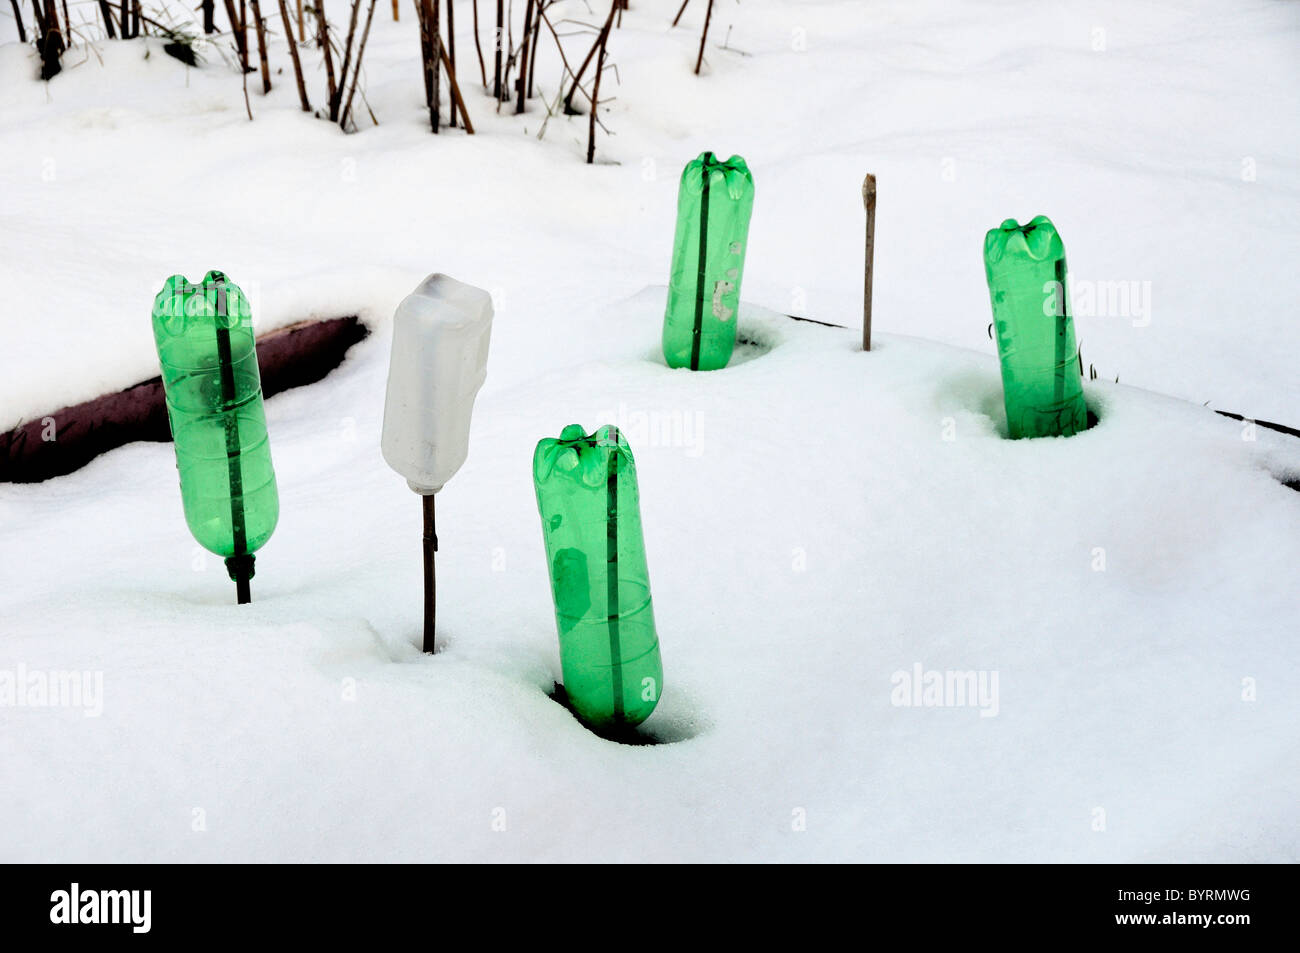 Recycled plastic water bottles upside-down over sticks in snow on an allotment - Stock Image